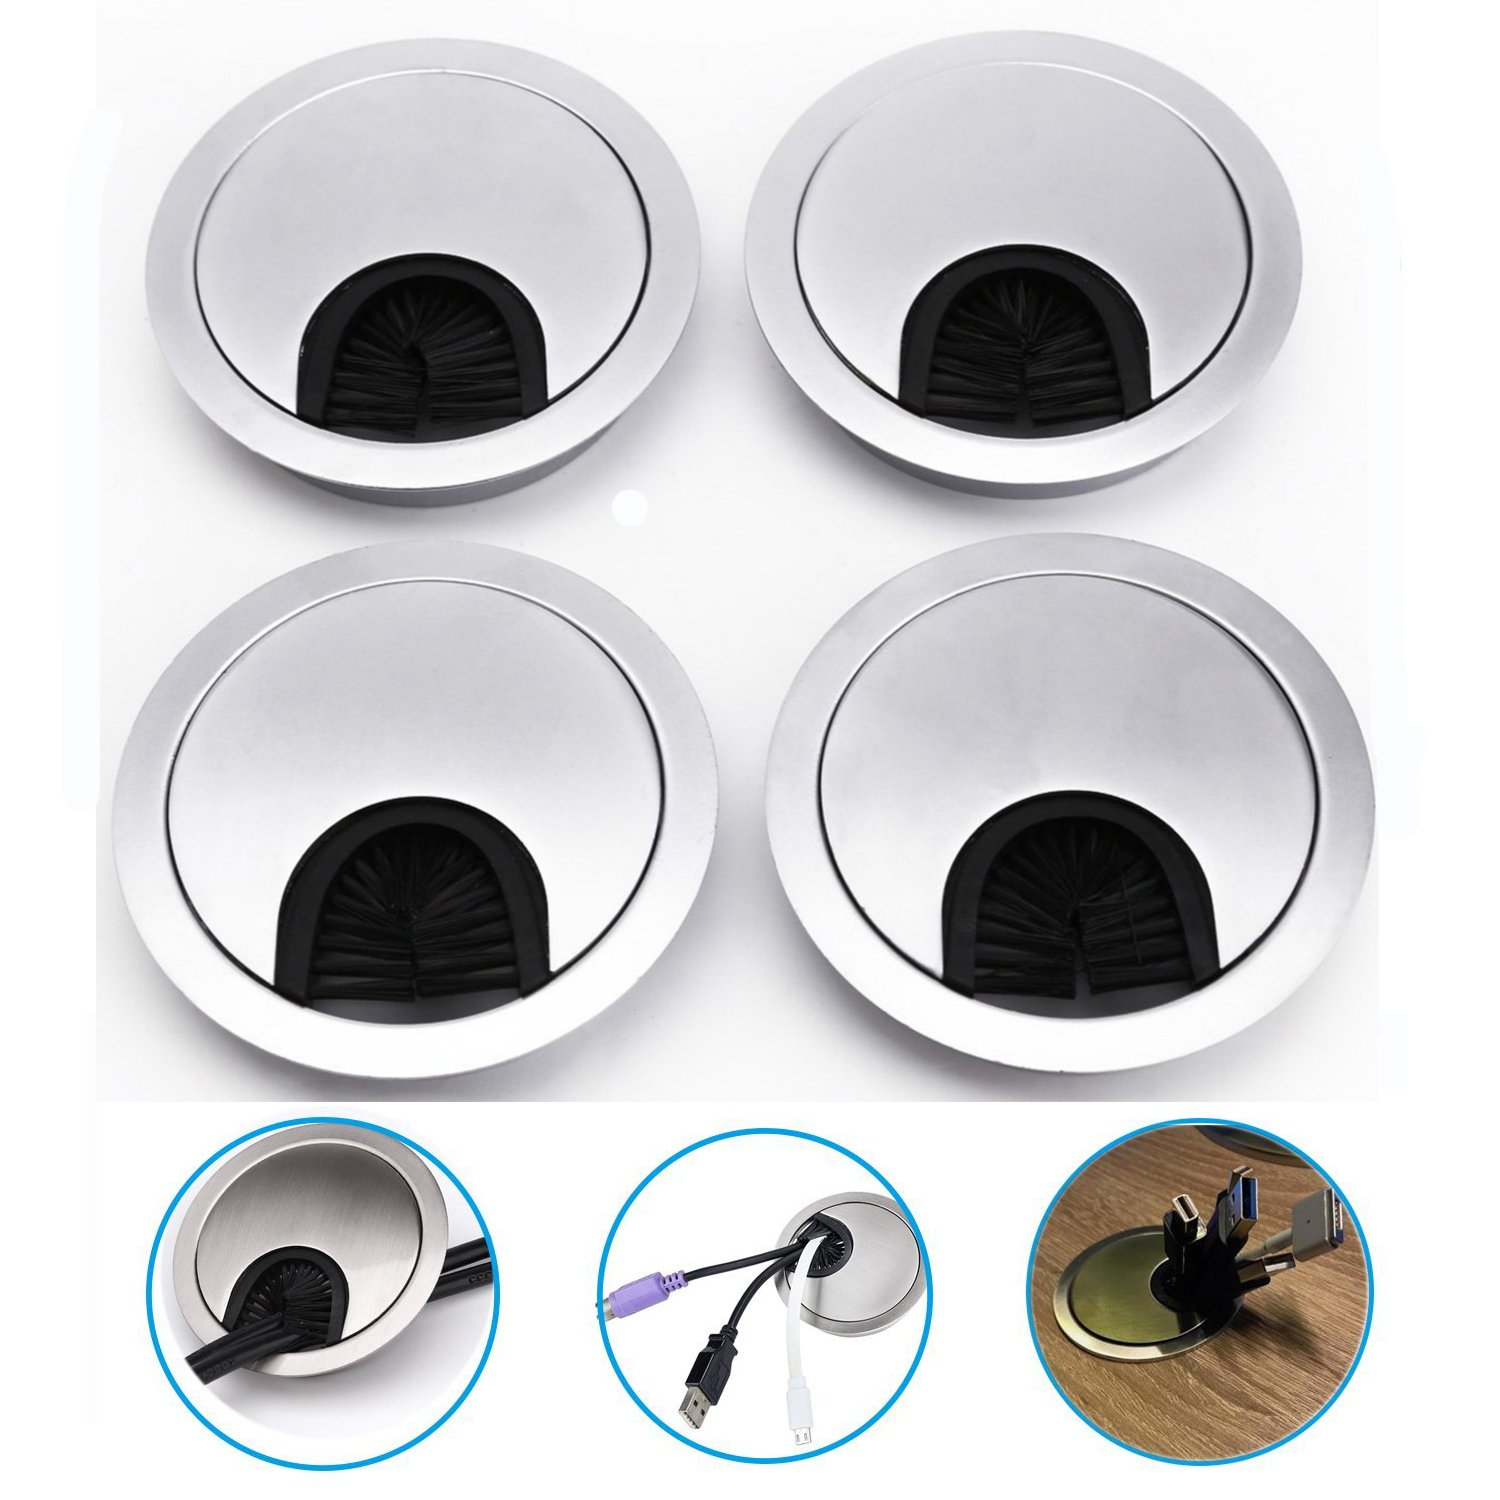 4pcs Desk Cable Tidy Computer Desk Cable Tidy Box Table Cable Organiser Grommet Desk Surface Port Hole Covers 80MM